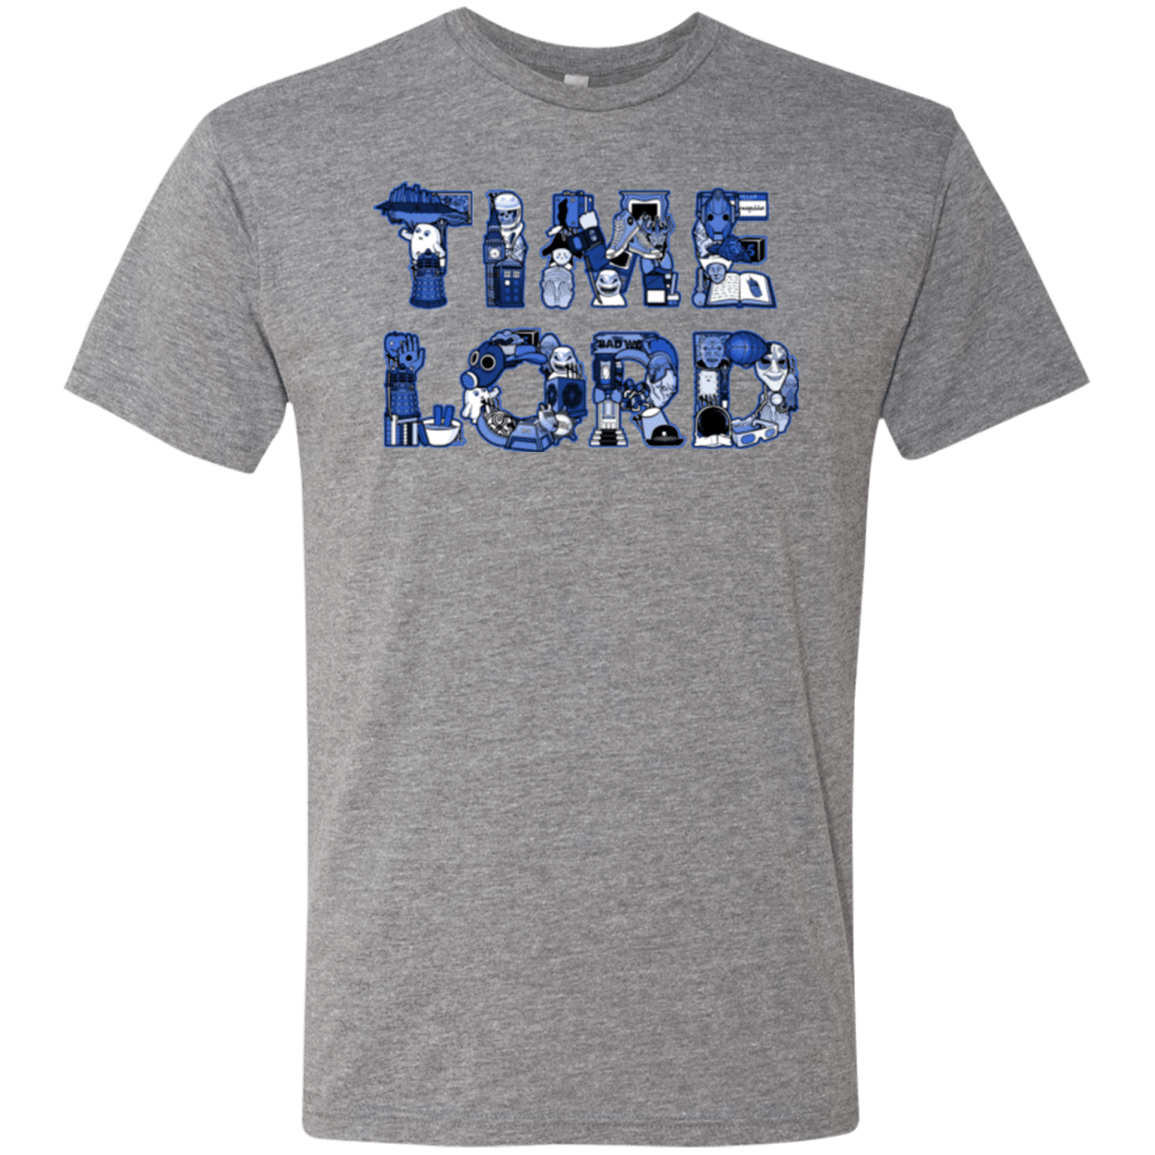 T-Shirts Premium Heather / Small Timelord Men's Triblend T-Shirt